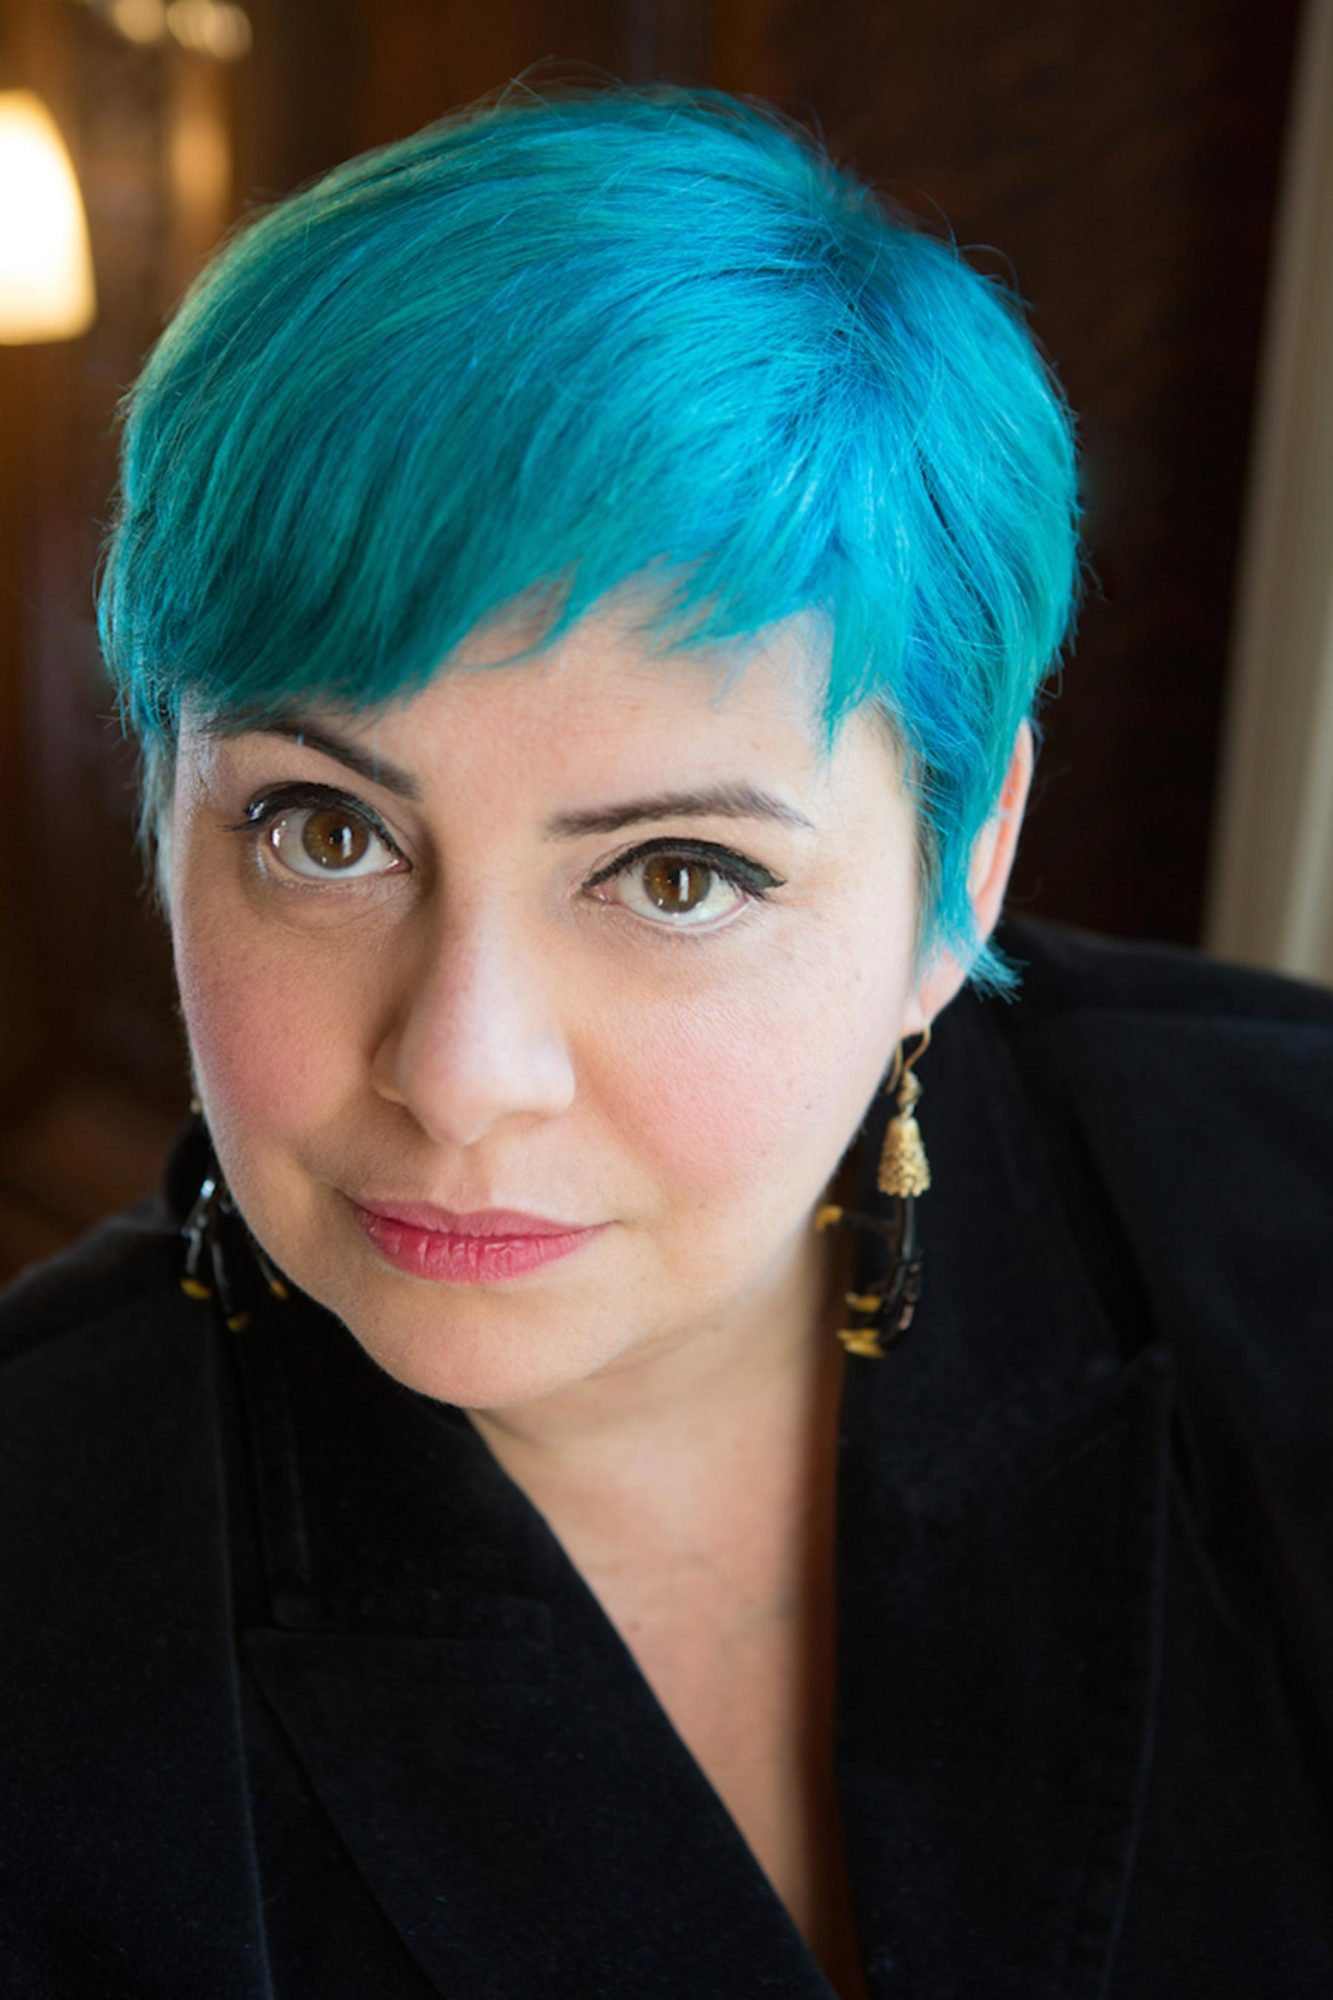 Holly Black Author Photo CR: Sharona Jacobs